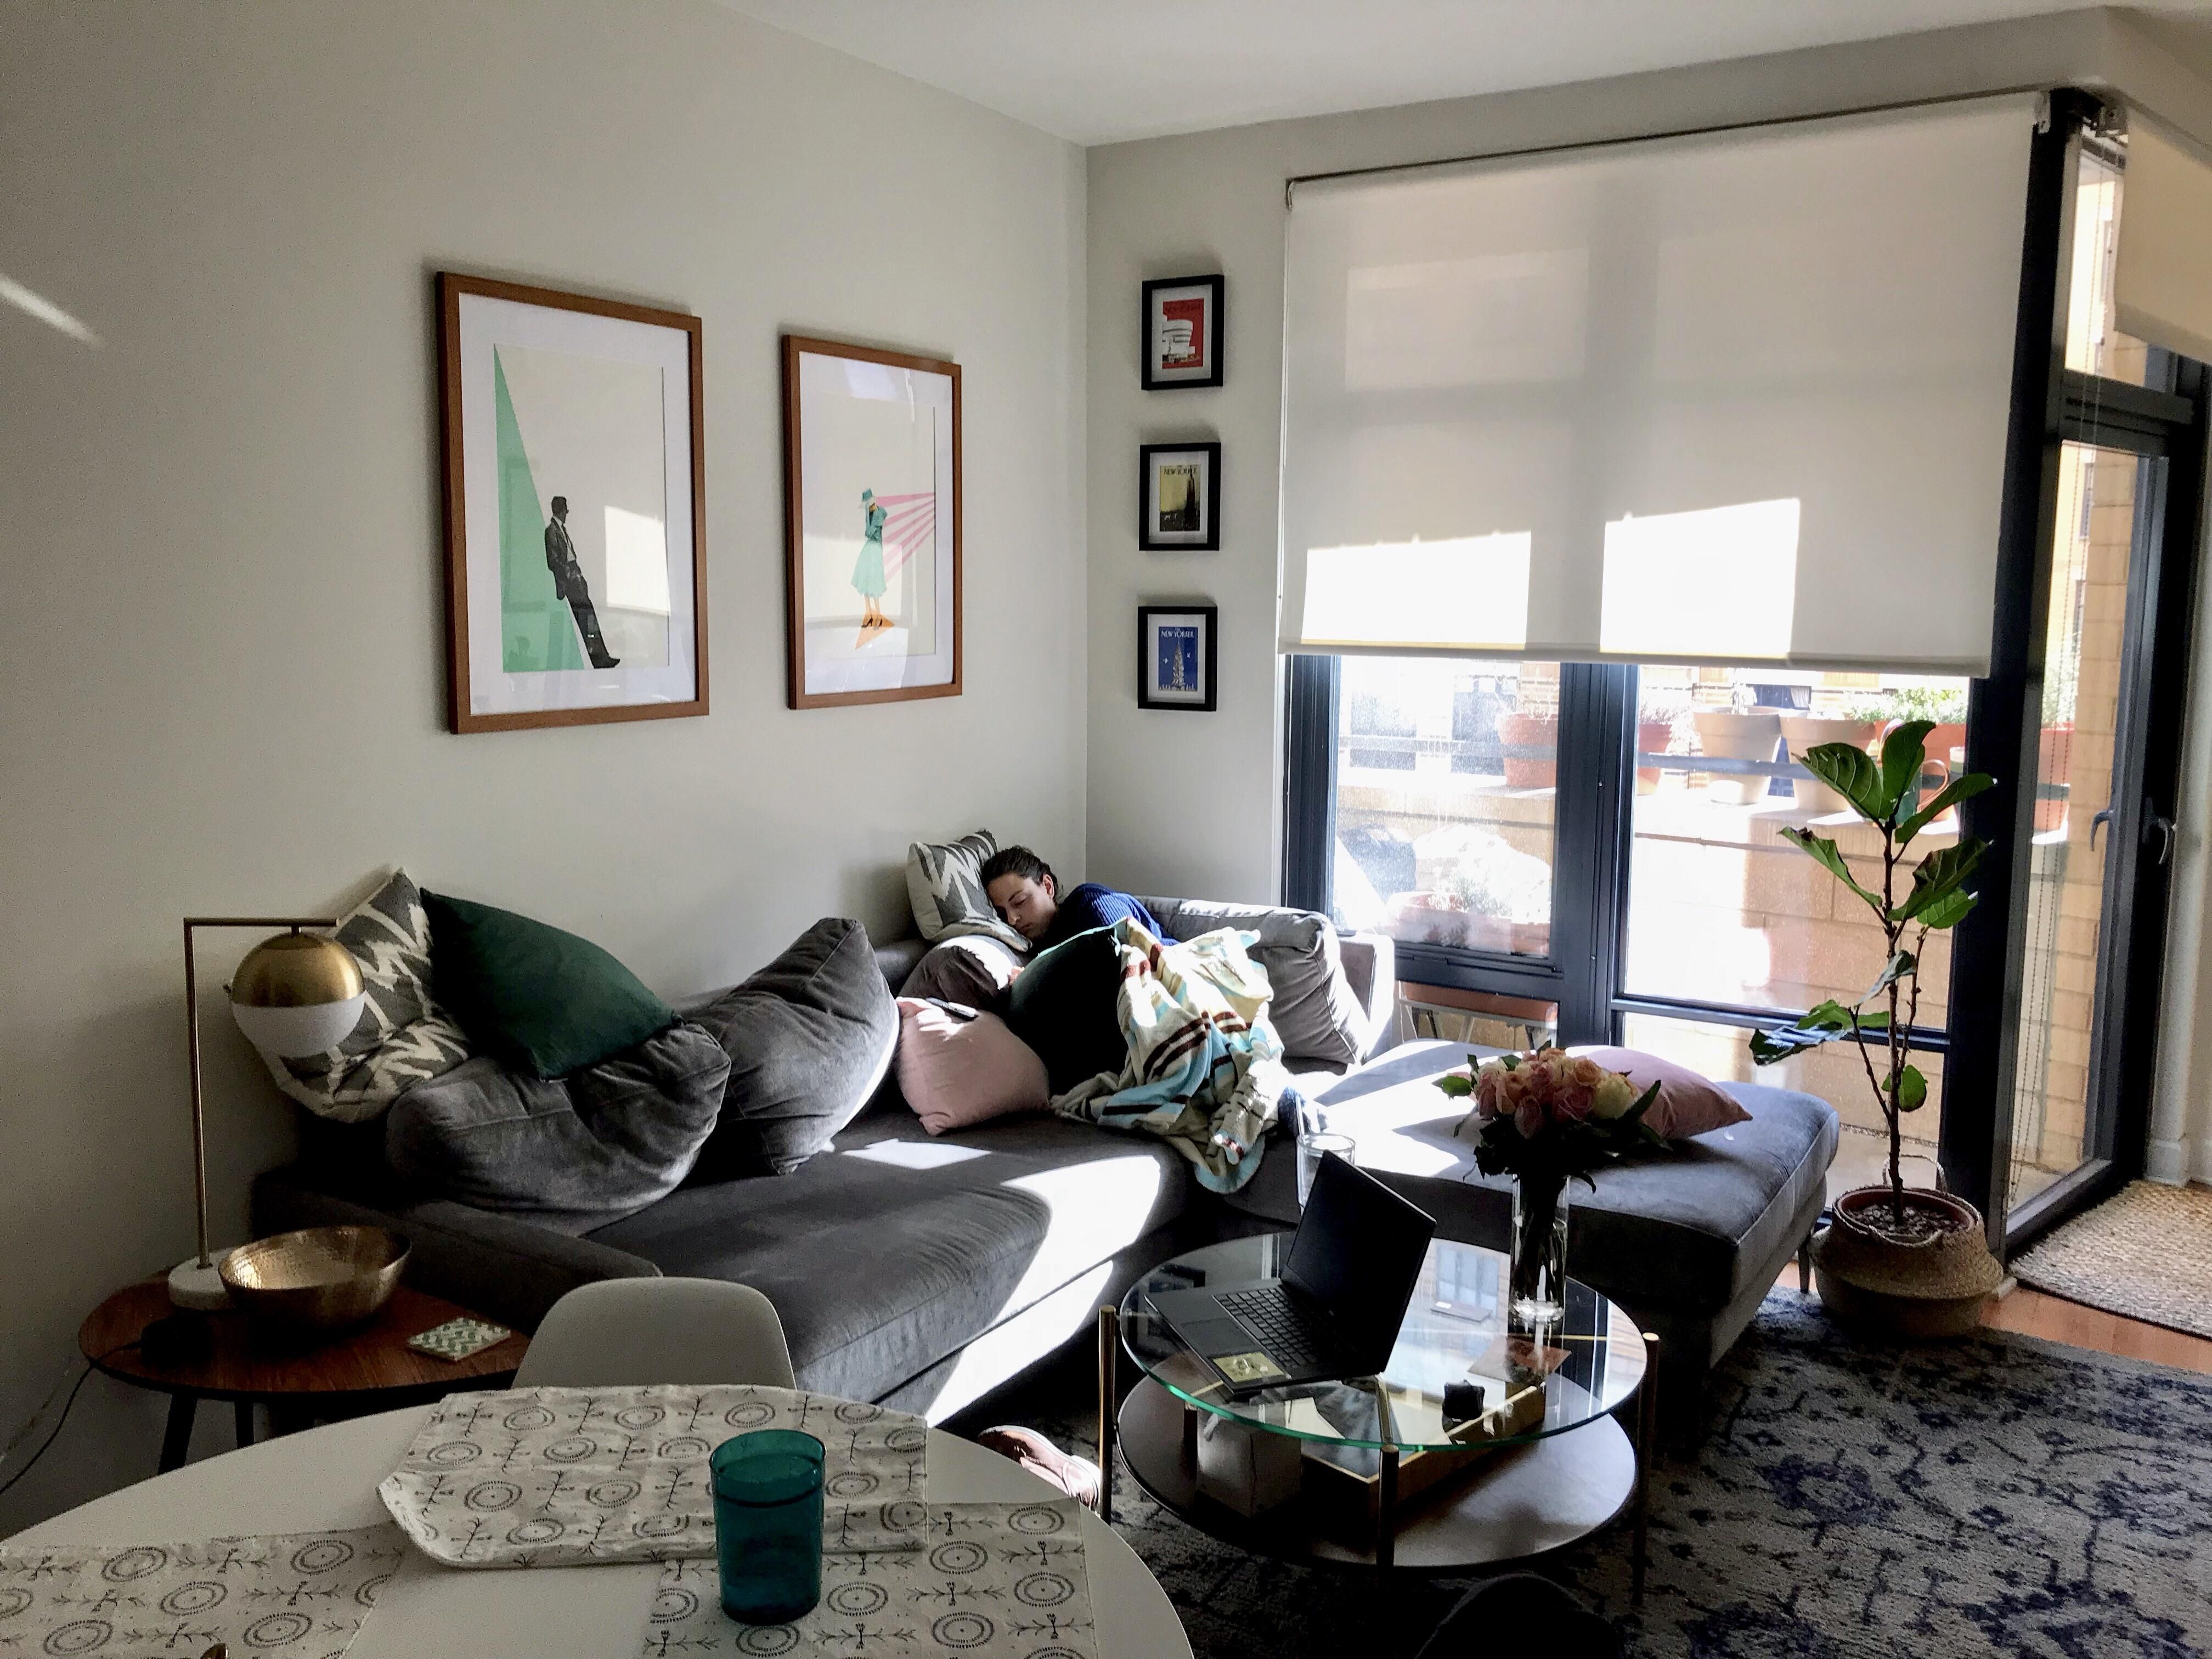 Not A Staged Photo And My Apartment Was Messy But I Snapped This Picture Of My Fiancee Napping On A Sunny Winter Afternoon Cozy Place Interior Dsign Interior